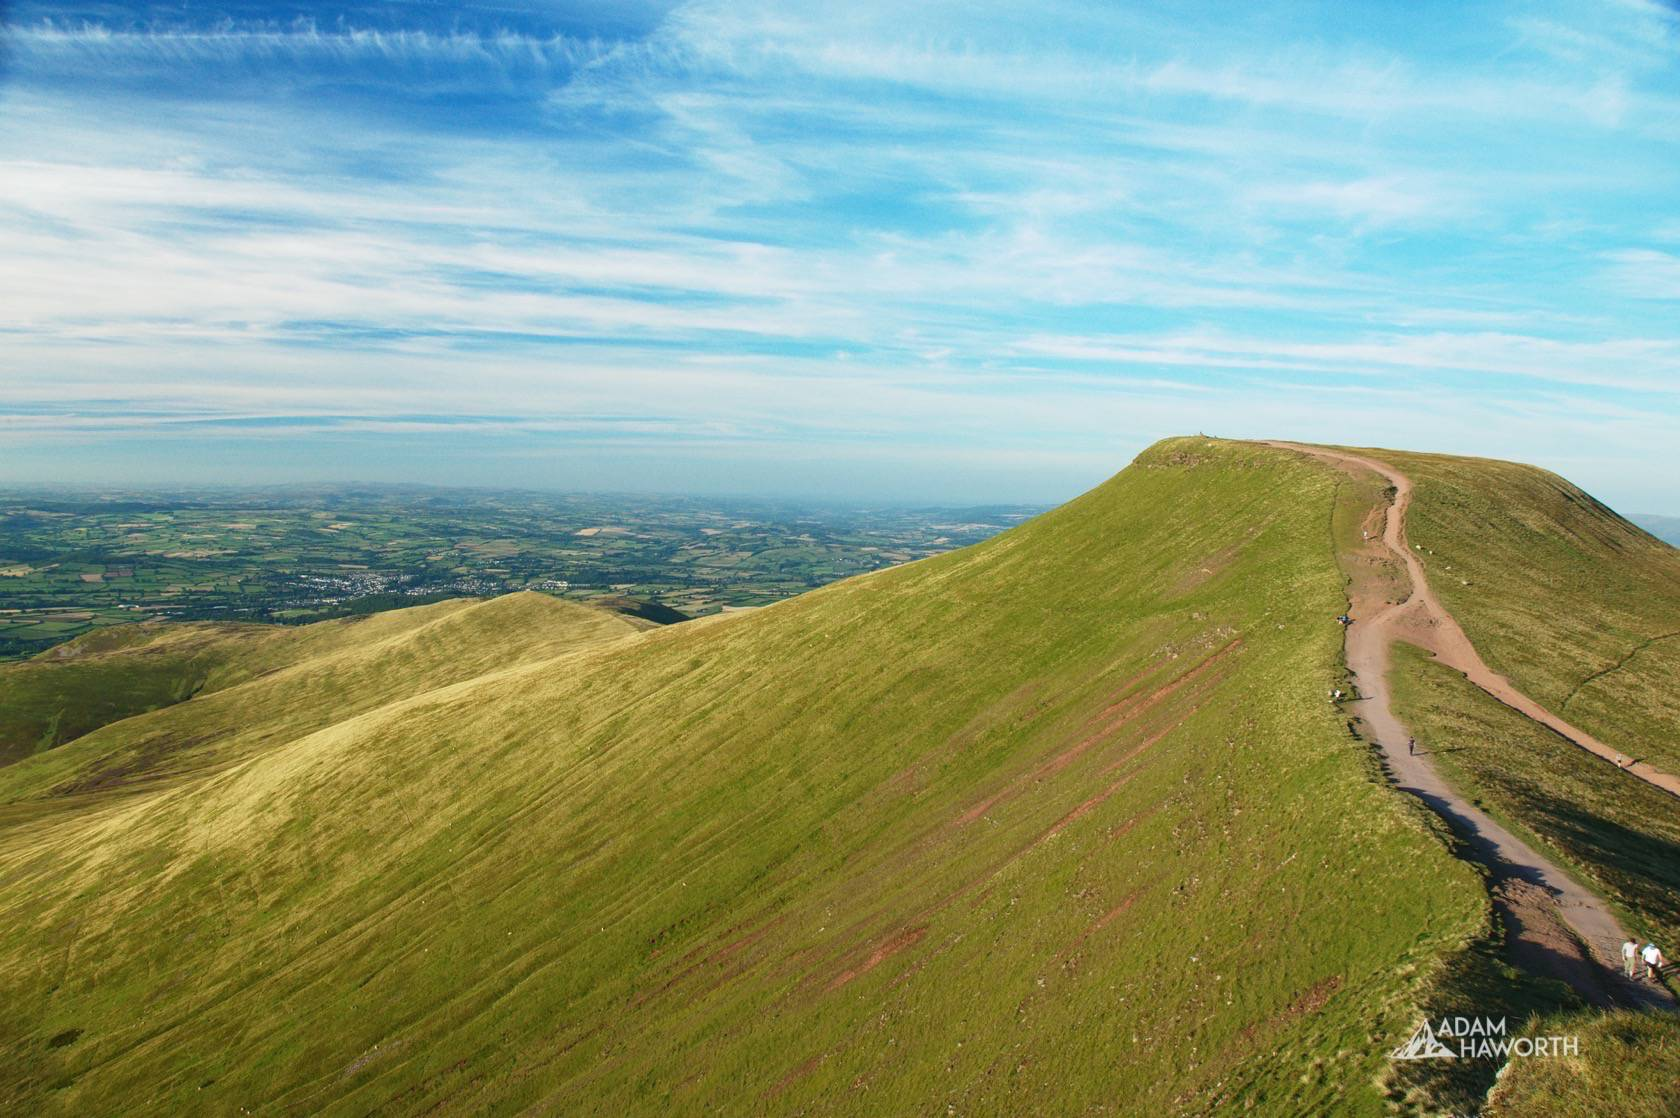 A summers day in the Brecon Beacons - Corn Du & Pen y Fan Circular Walk